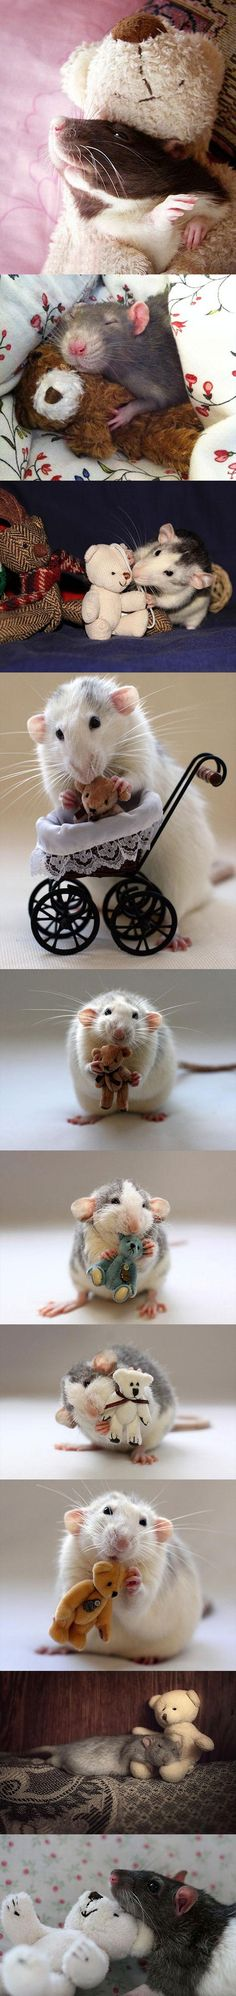 More rats with teddy bears.